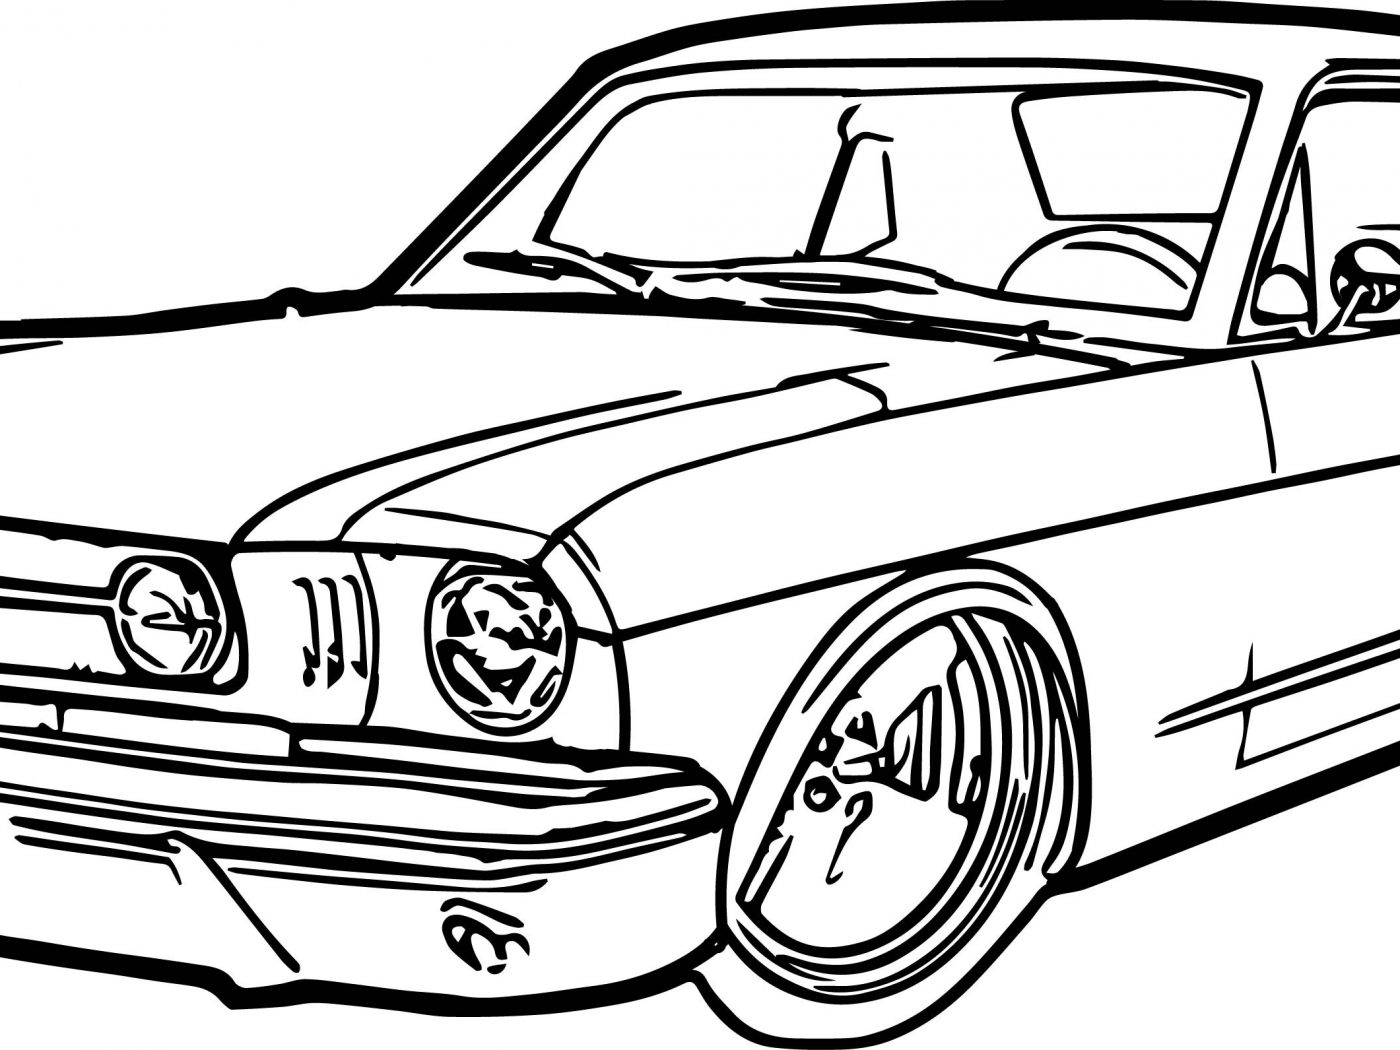 1400x1050 Printable Mustang Car Coloring Page Ford School And Pages General